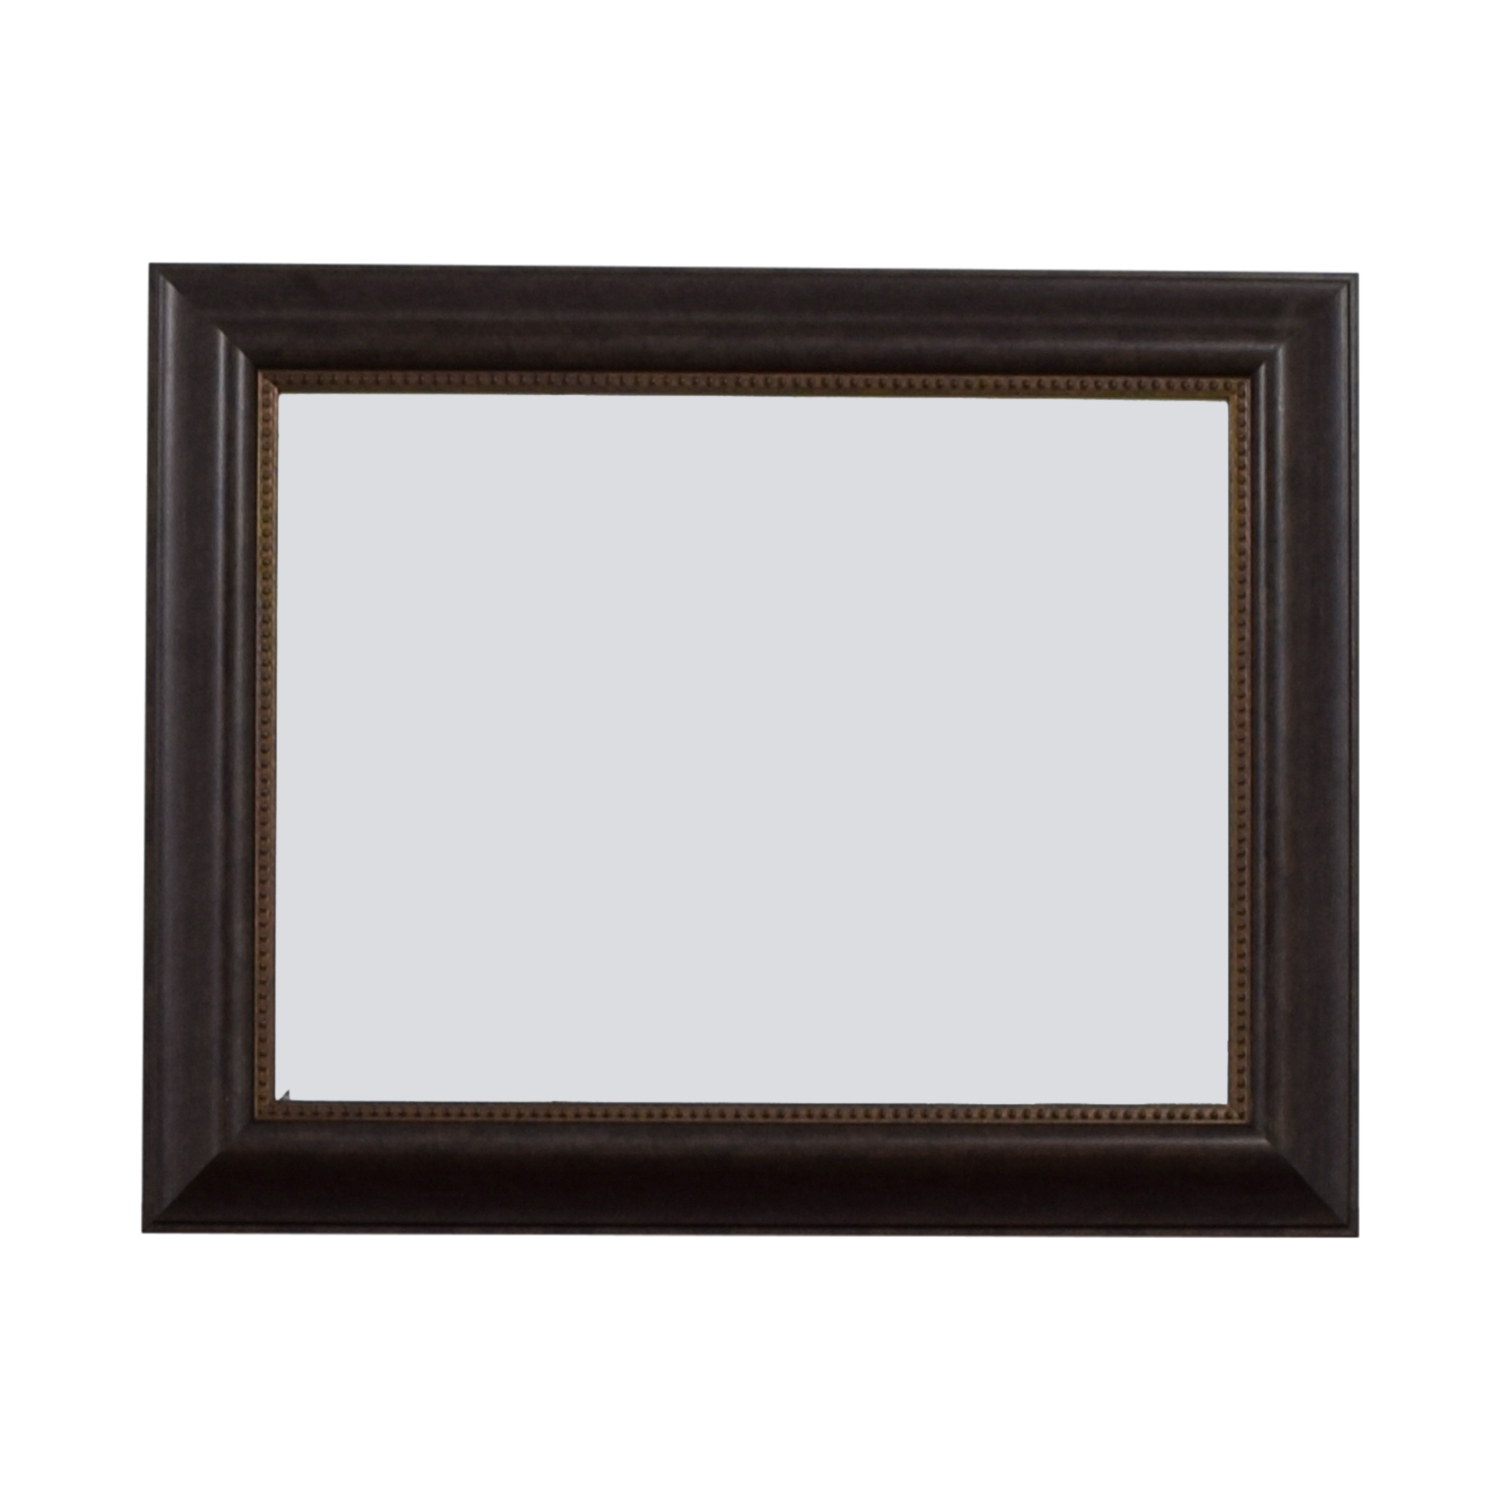 Wood Framed Mirror brown